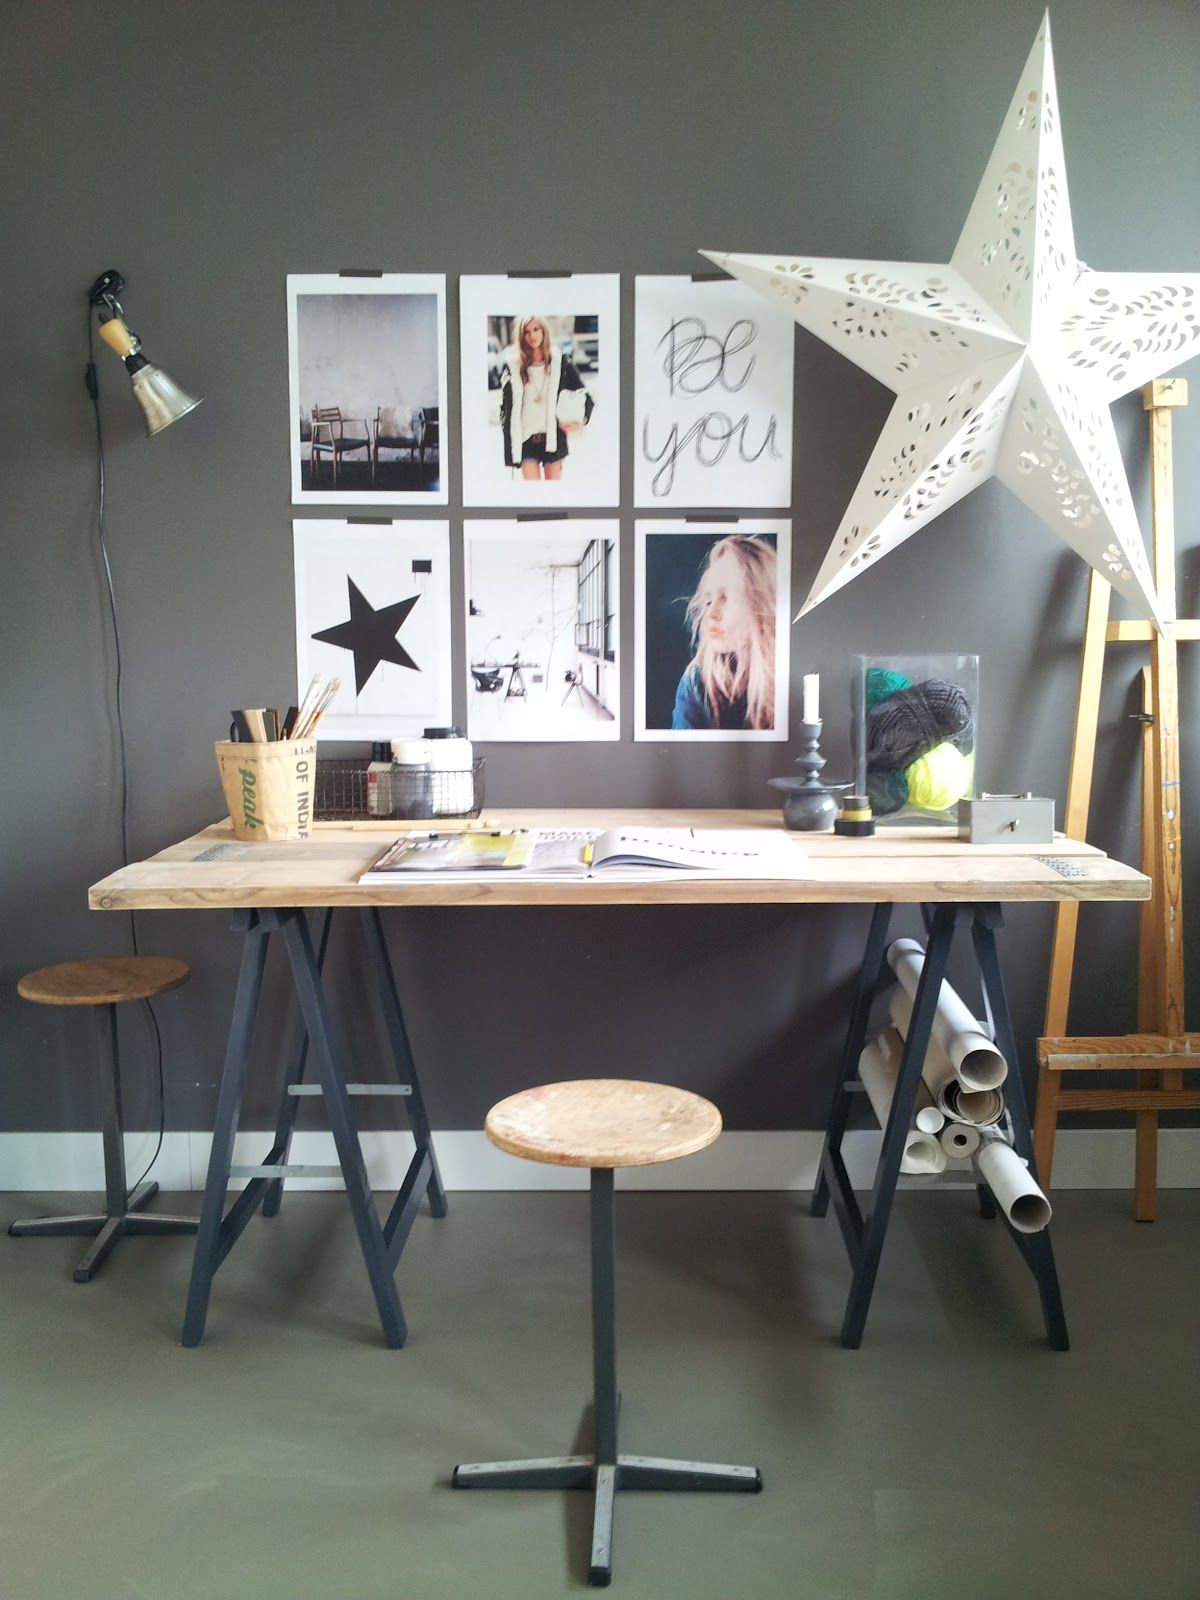 Different Ideas For Creative Space But I Quite Like